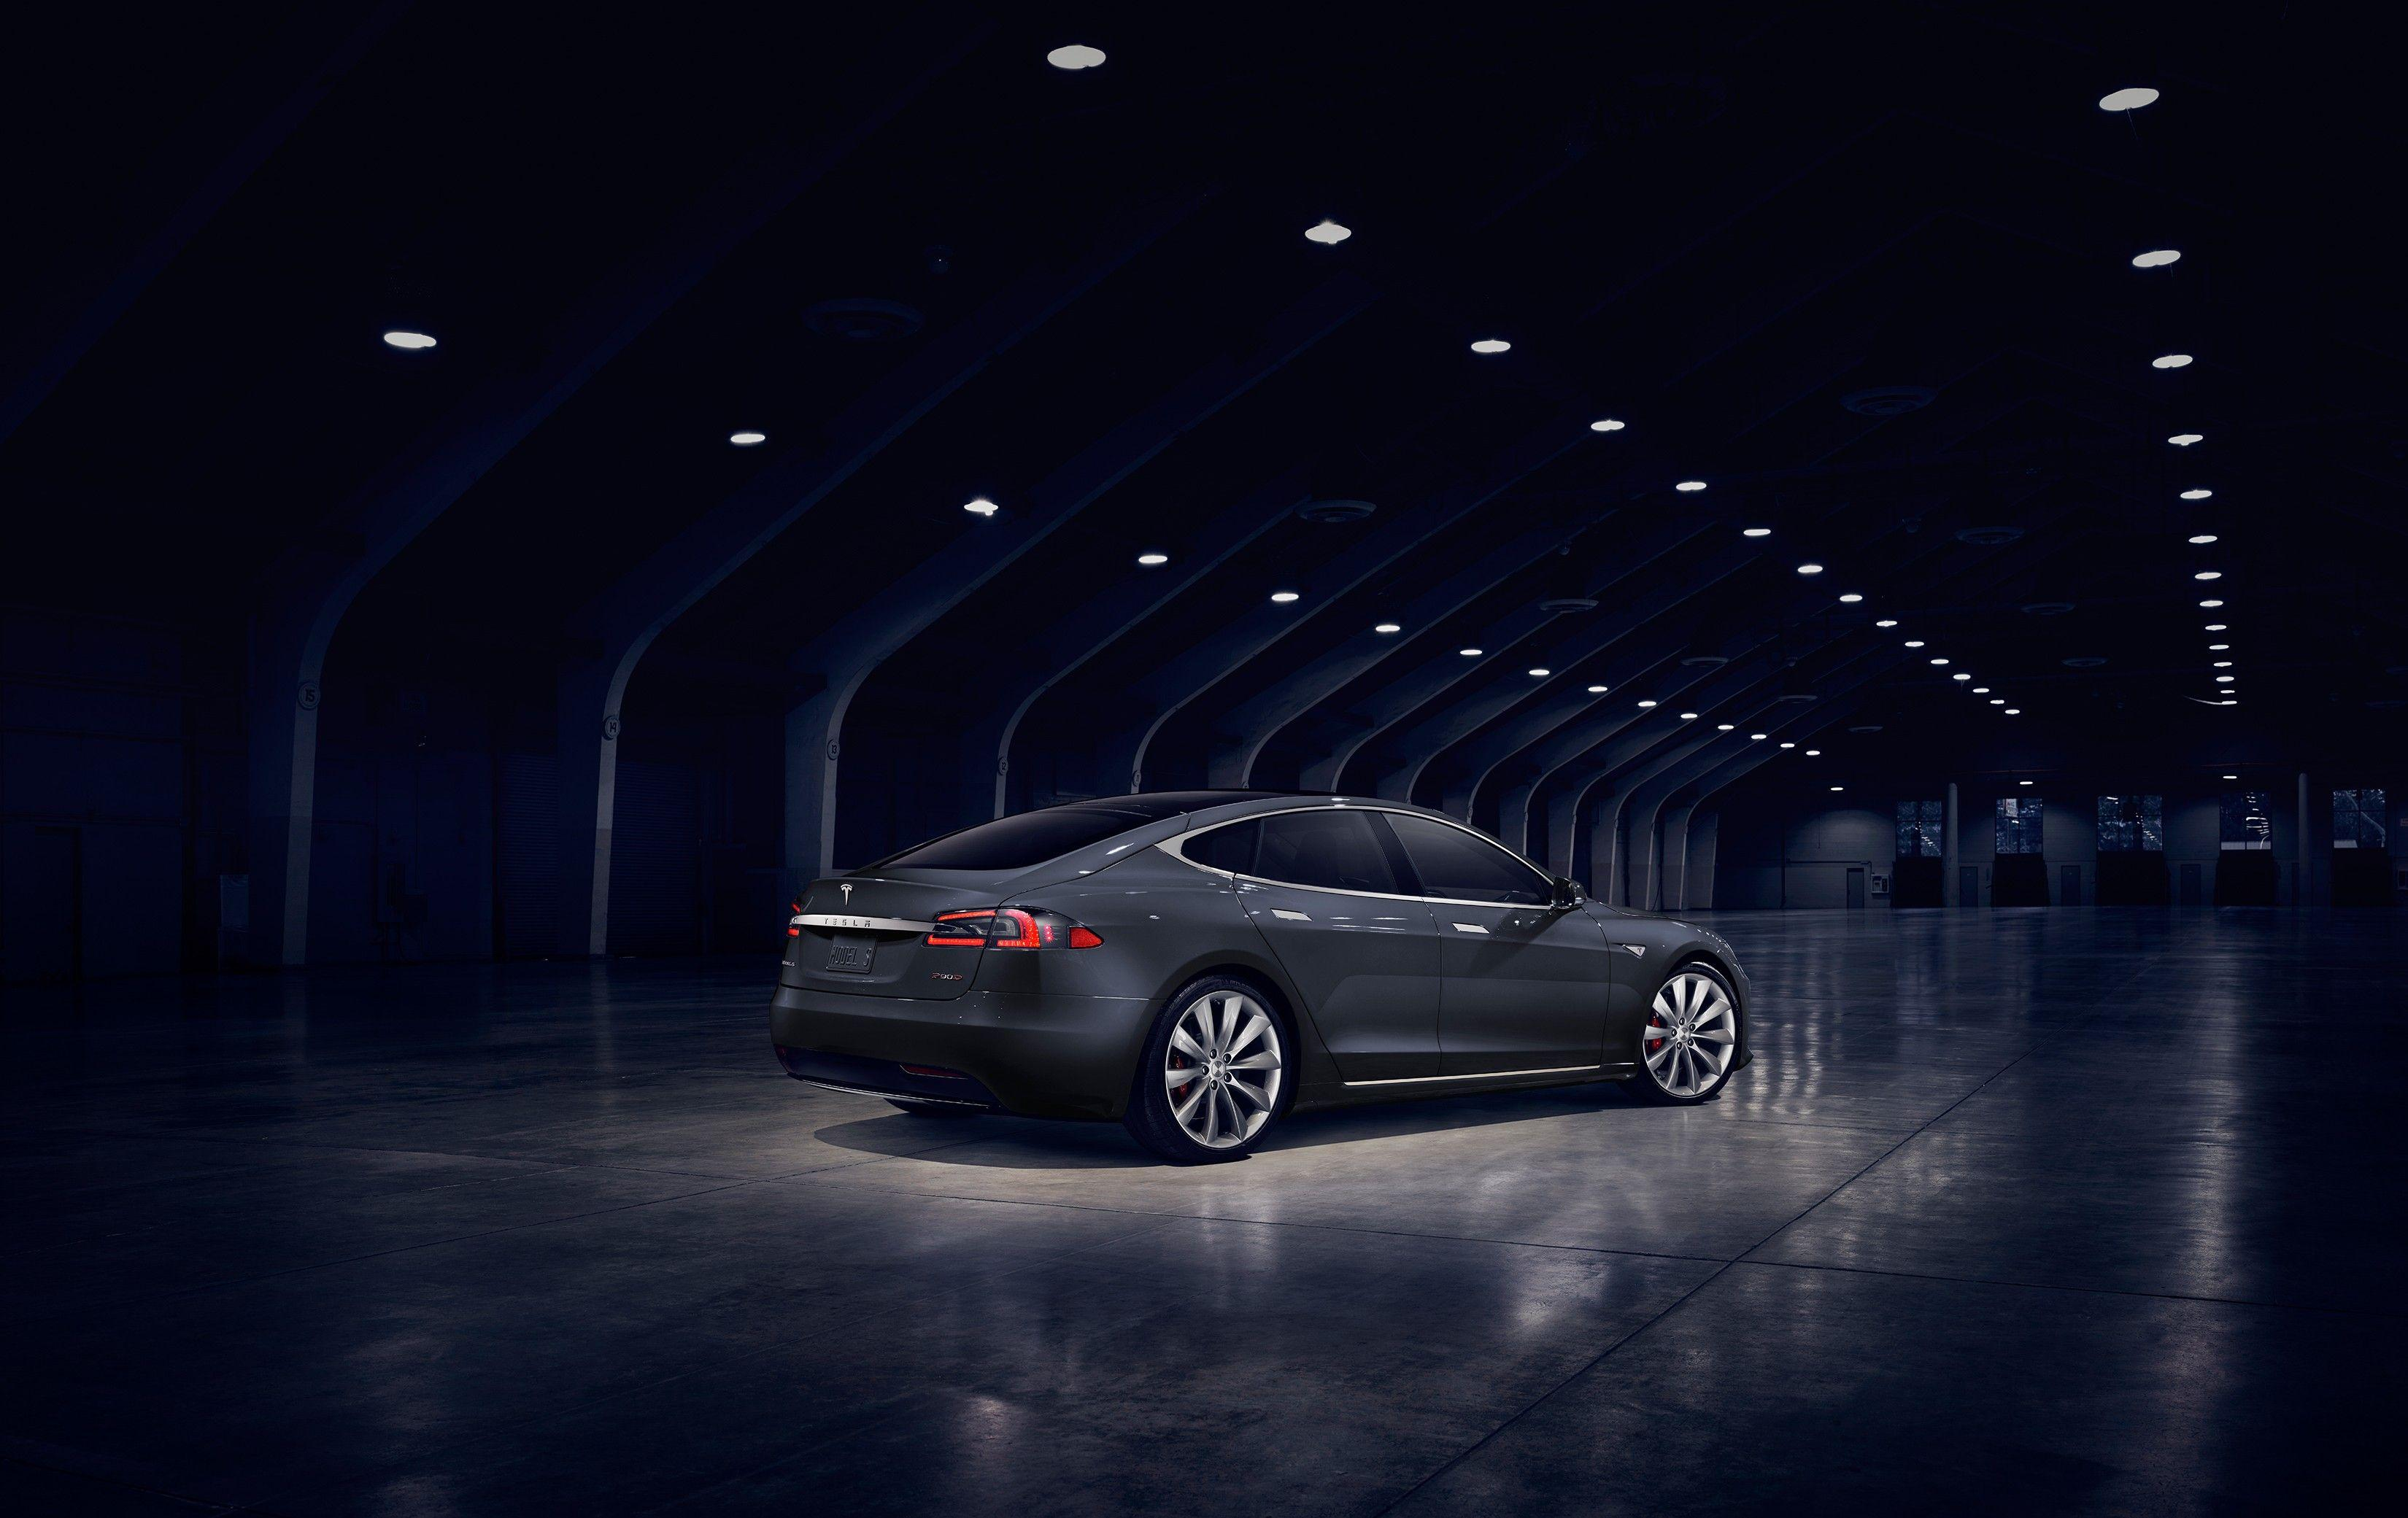 2018 Tesla Model 3 Wallpapers HD Photos, Wallpapers and other Image